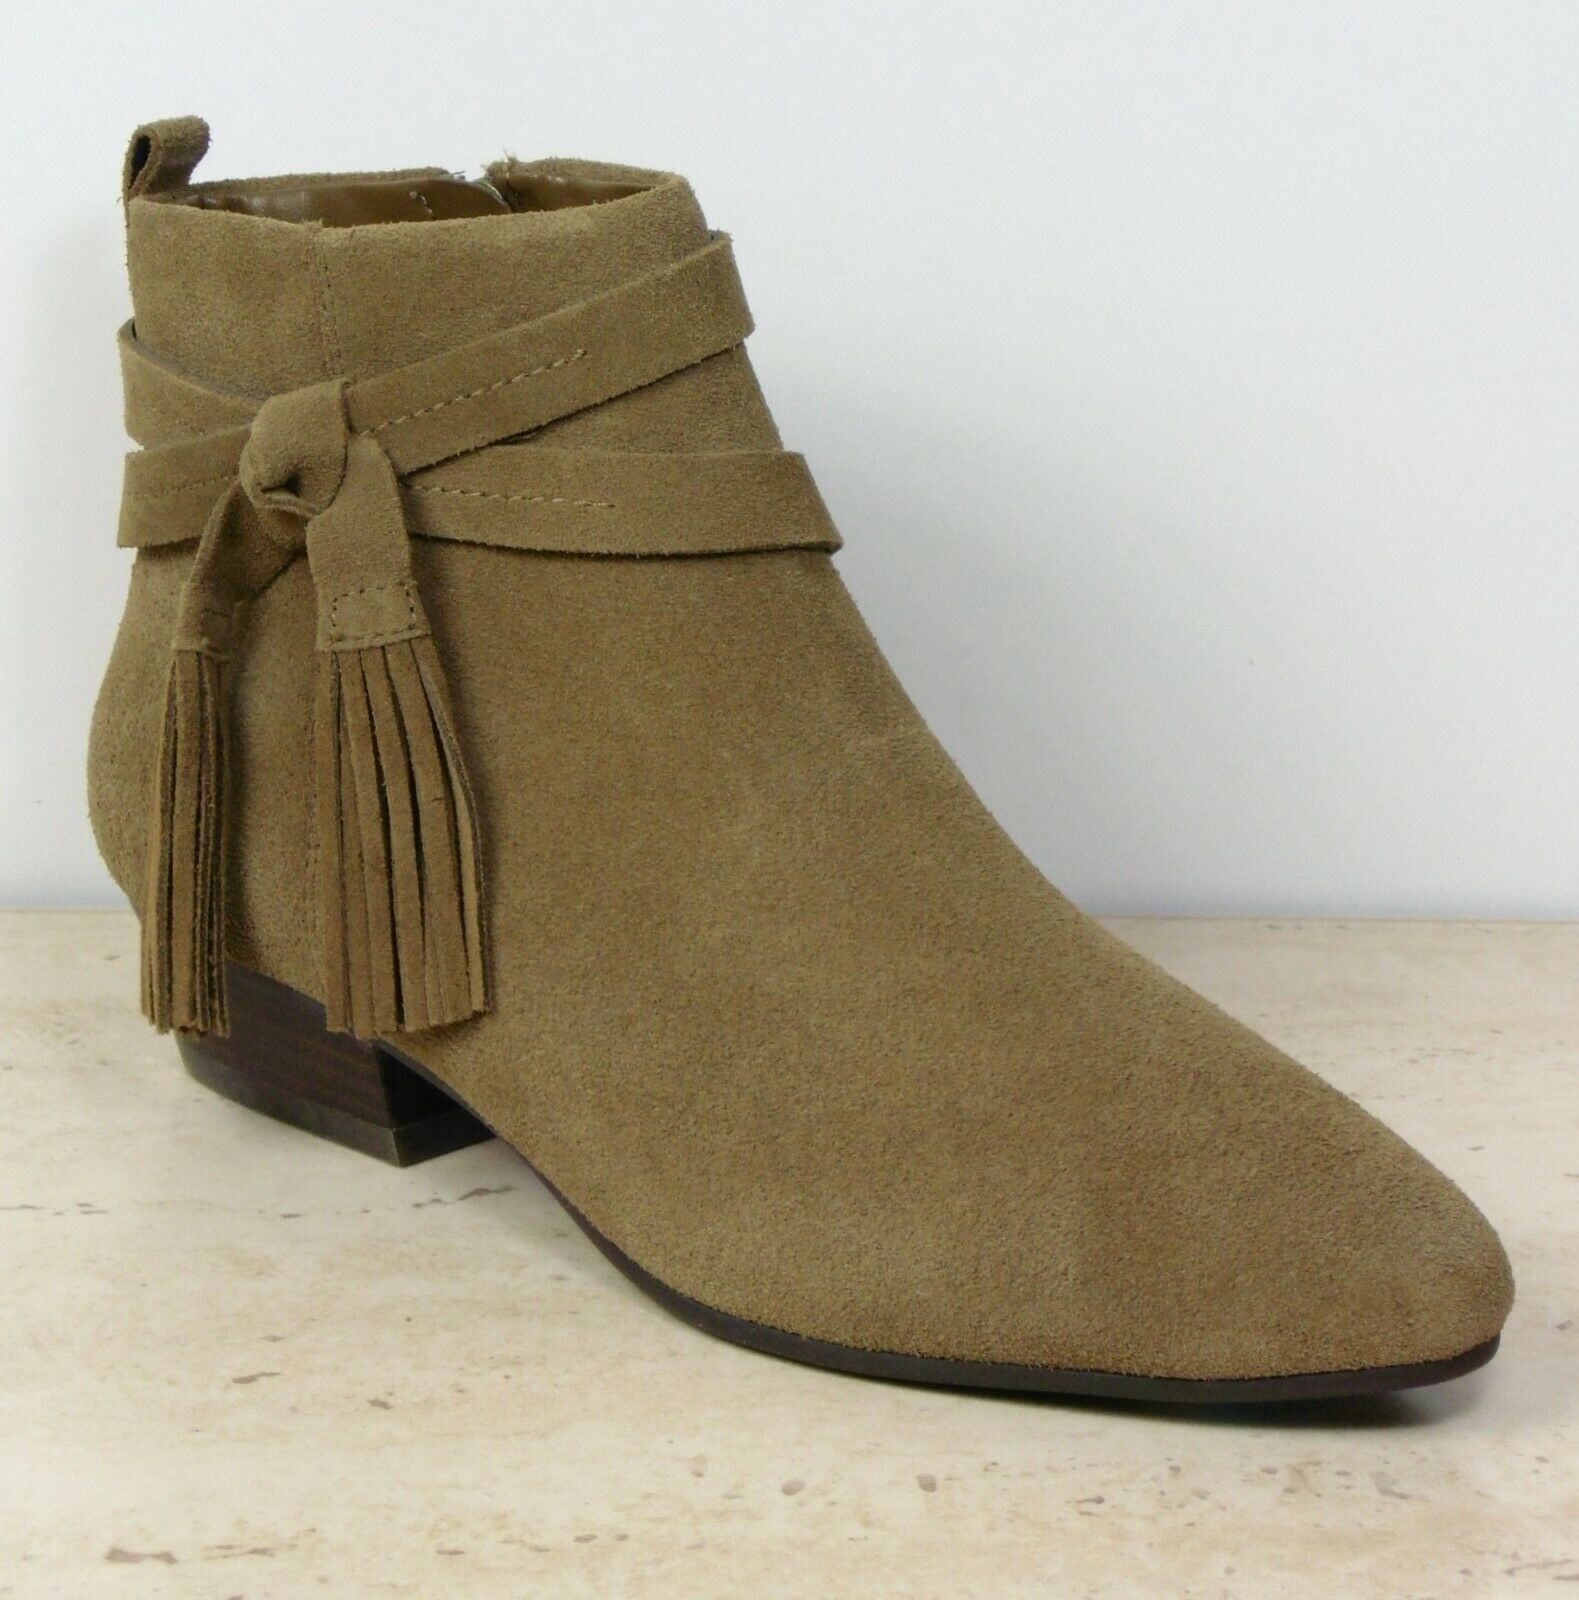 M&S Real SUEDE Low Heel TASSEL ANKLE BOOTS  Size 5  OLIVE BEIGE (rrp )